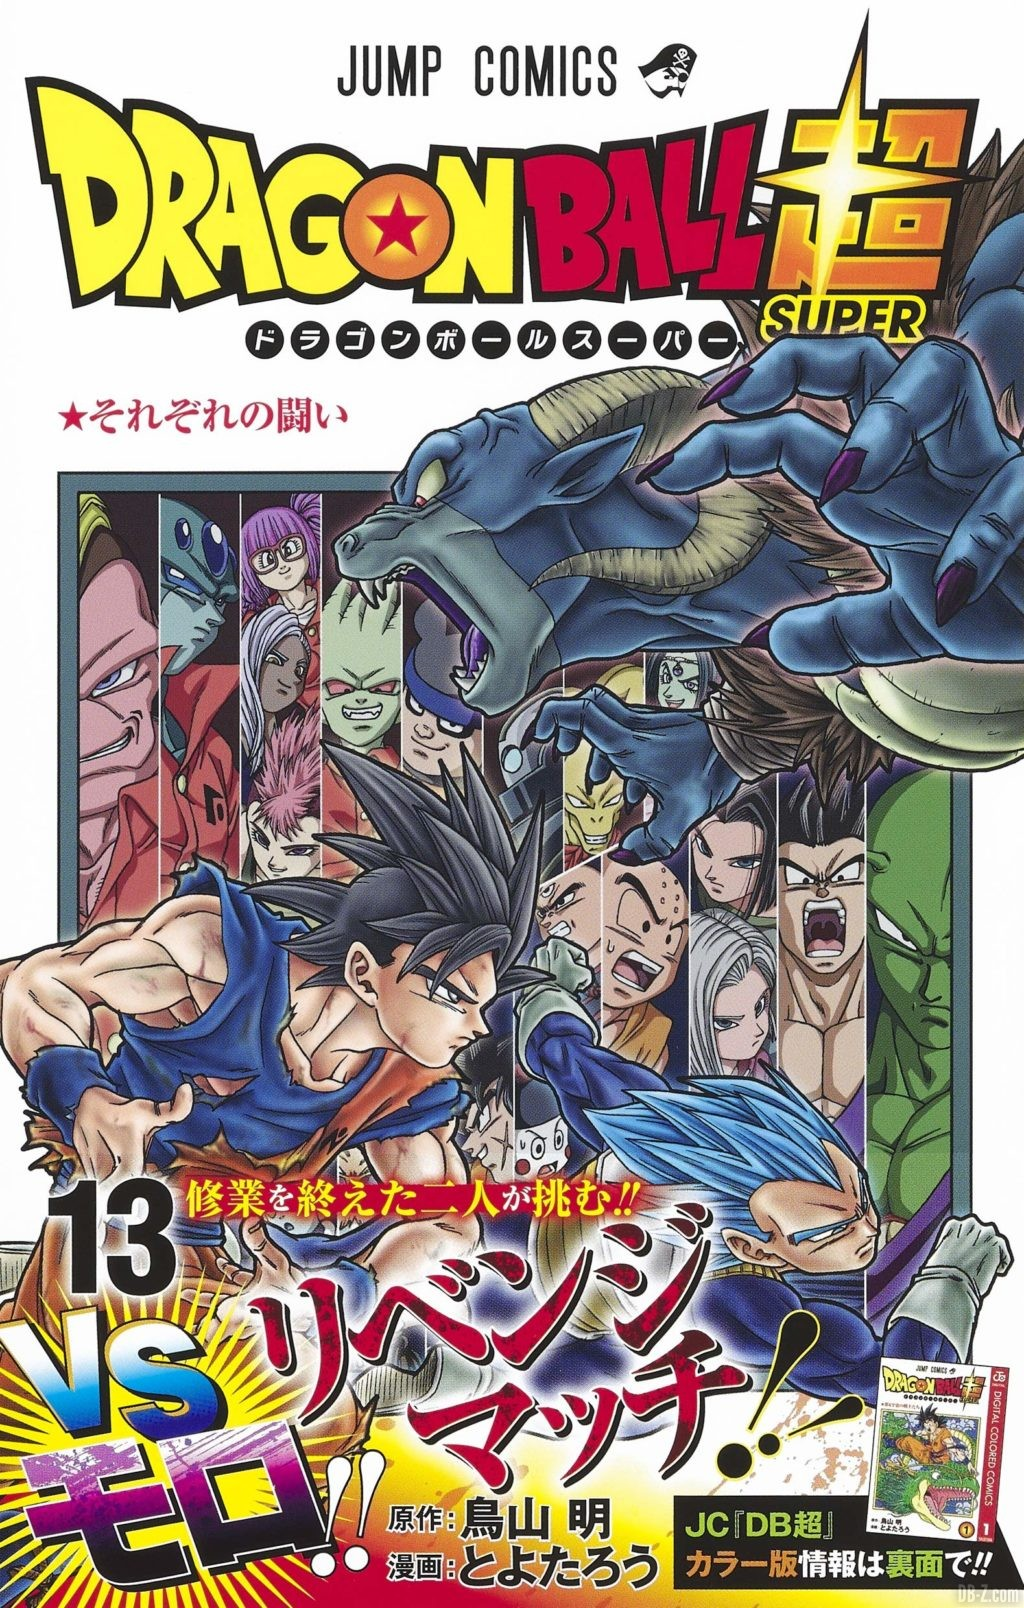 Cover tome 13 Dragon Ball Super avec promo